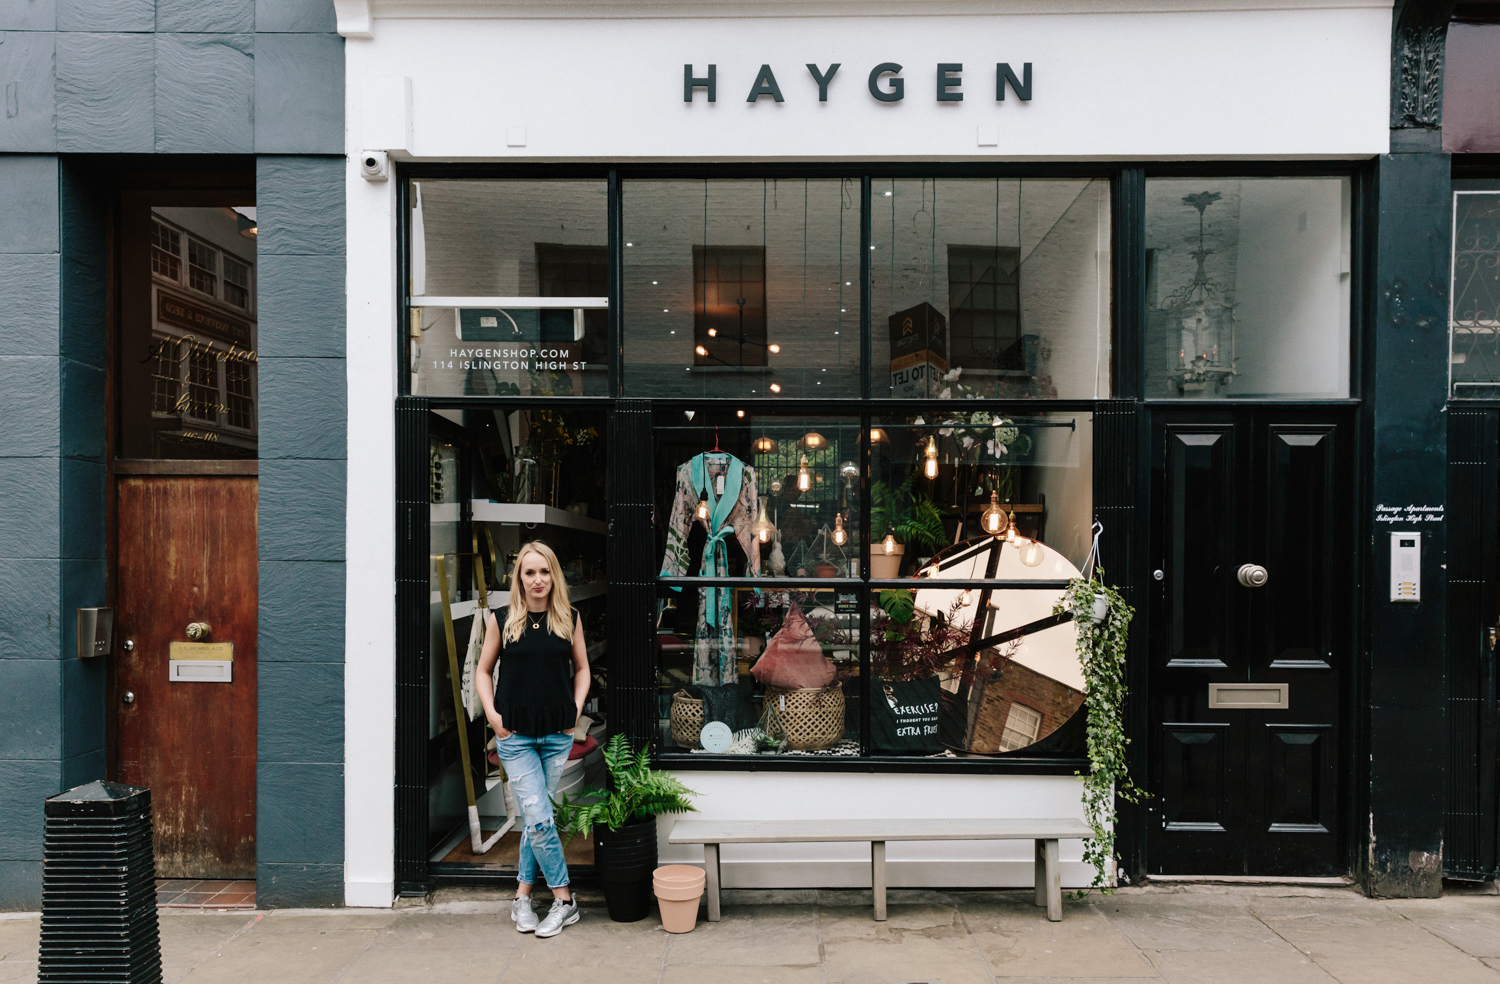 Haygen boutique in Camden Passage